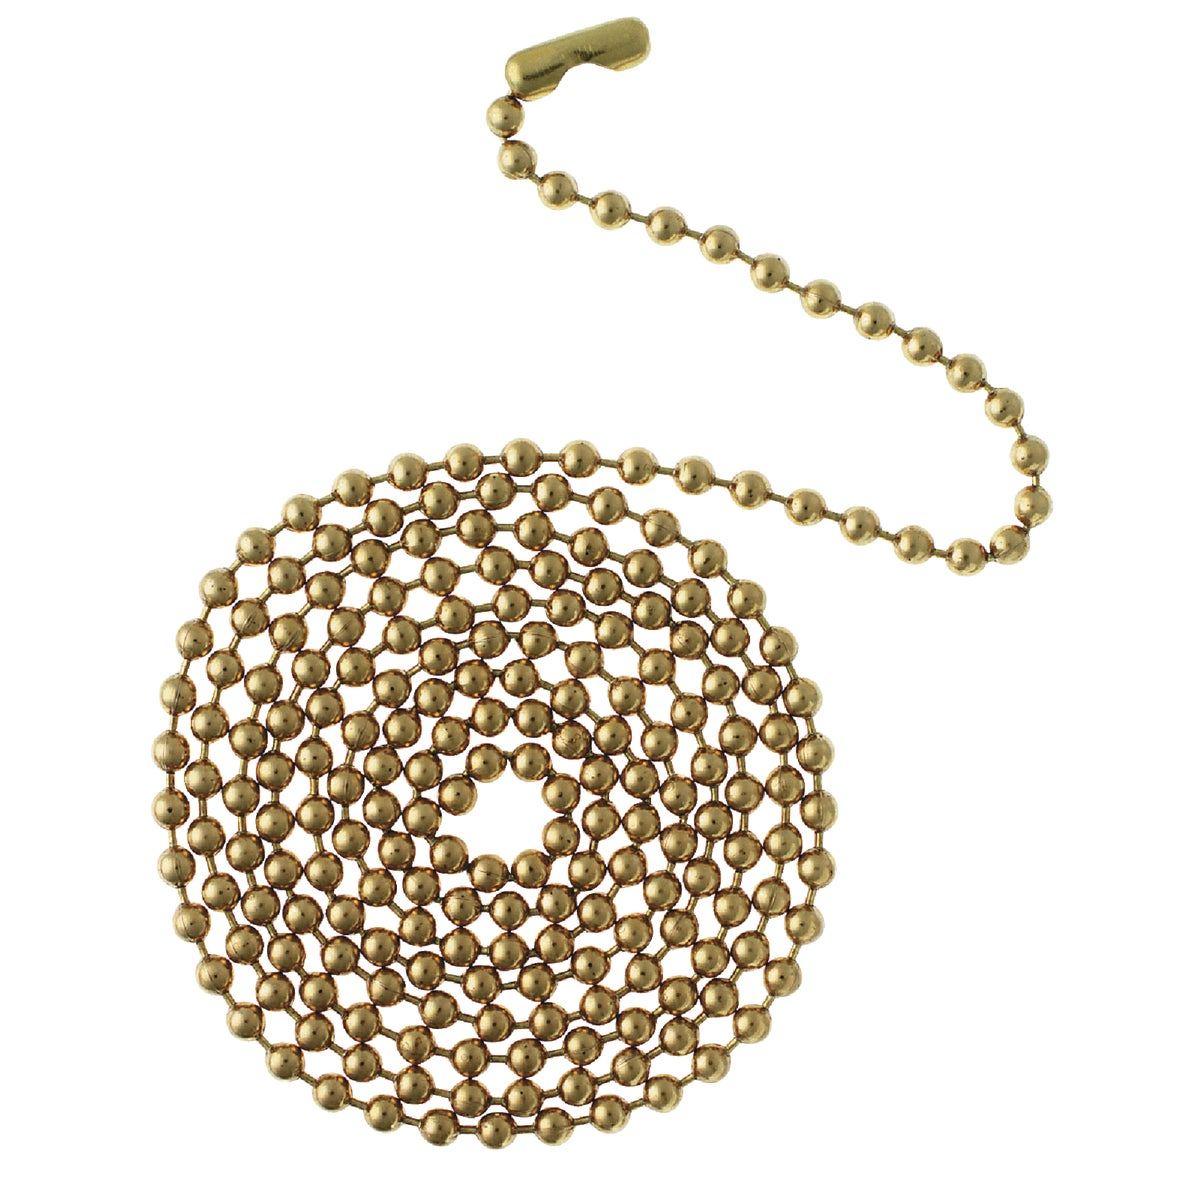 3' PB BEADED PULL CHAIN - 77050 by Westinghouse Lightng